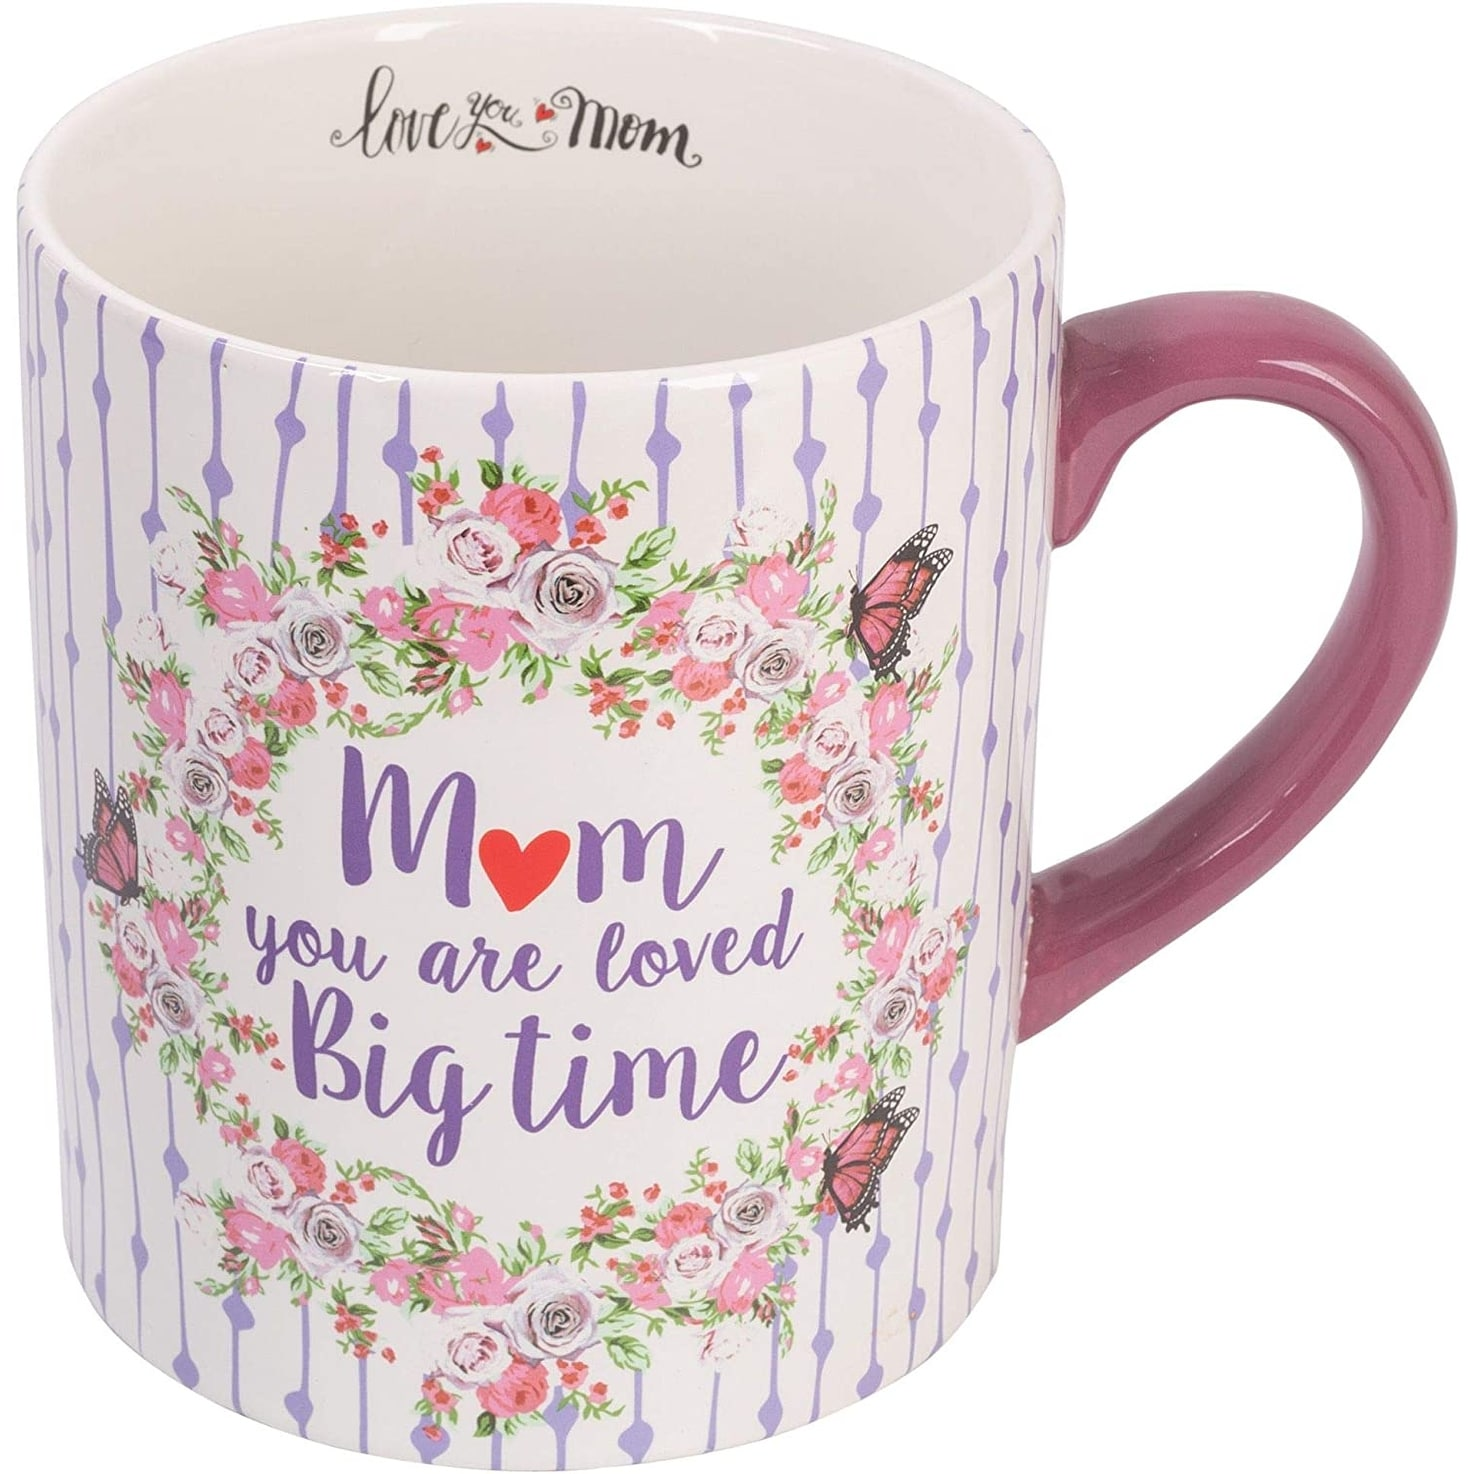 Birthday Gifts For Mom Extra Large Coffee Mug Ceramic Cute Mug Holds 61 Oz Overstock 31982189